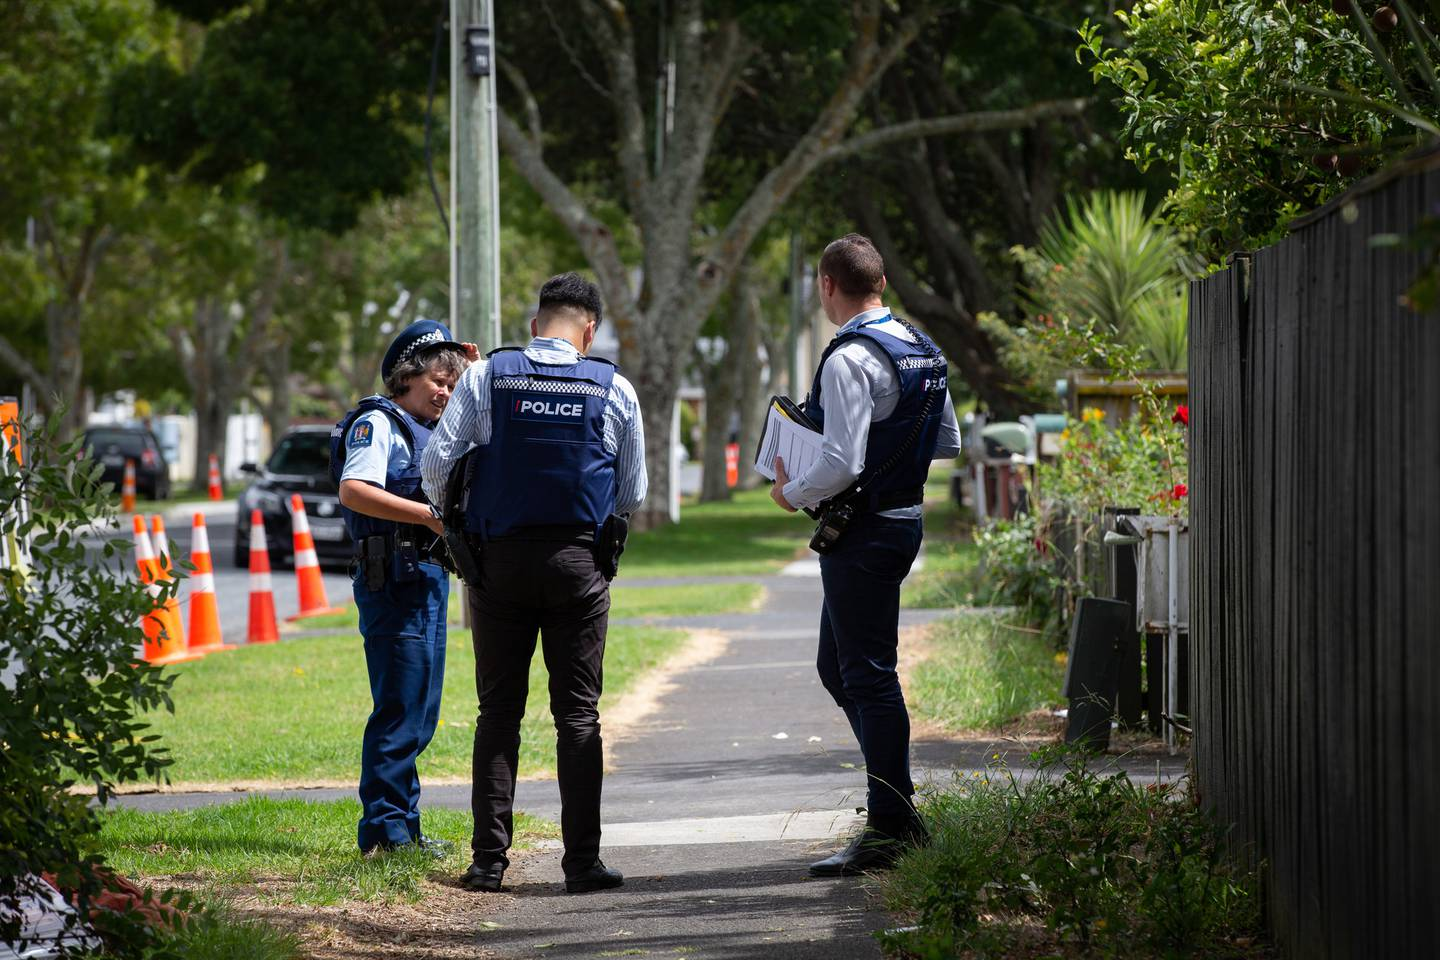 Police said Tangaru Turia was holding a gun as he left a property on Avis Ave in Papatoetoe before he was shot dead. Photo / NZME